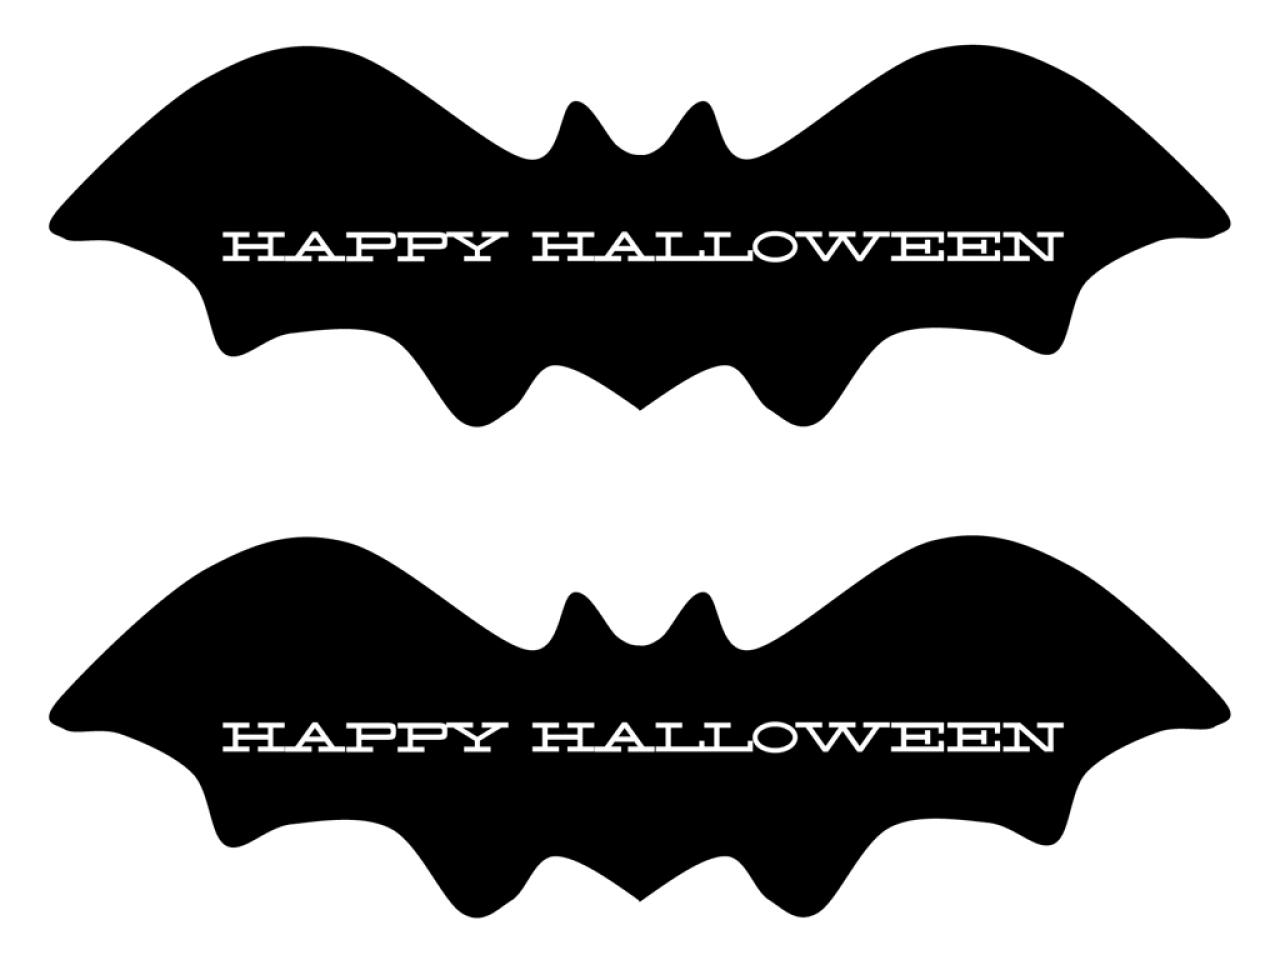 Priceless image pertaining to printable halloween templates